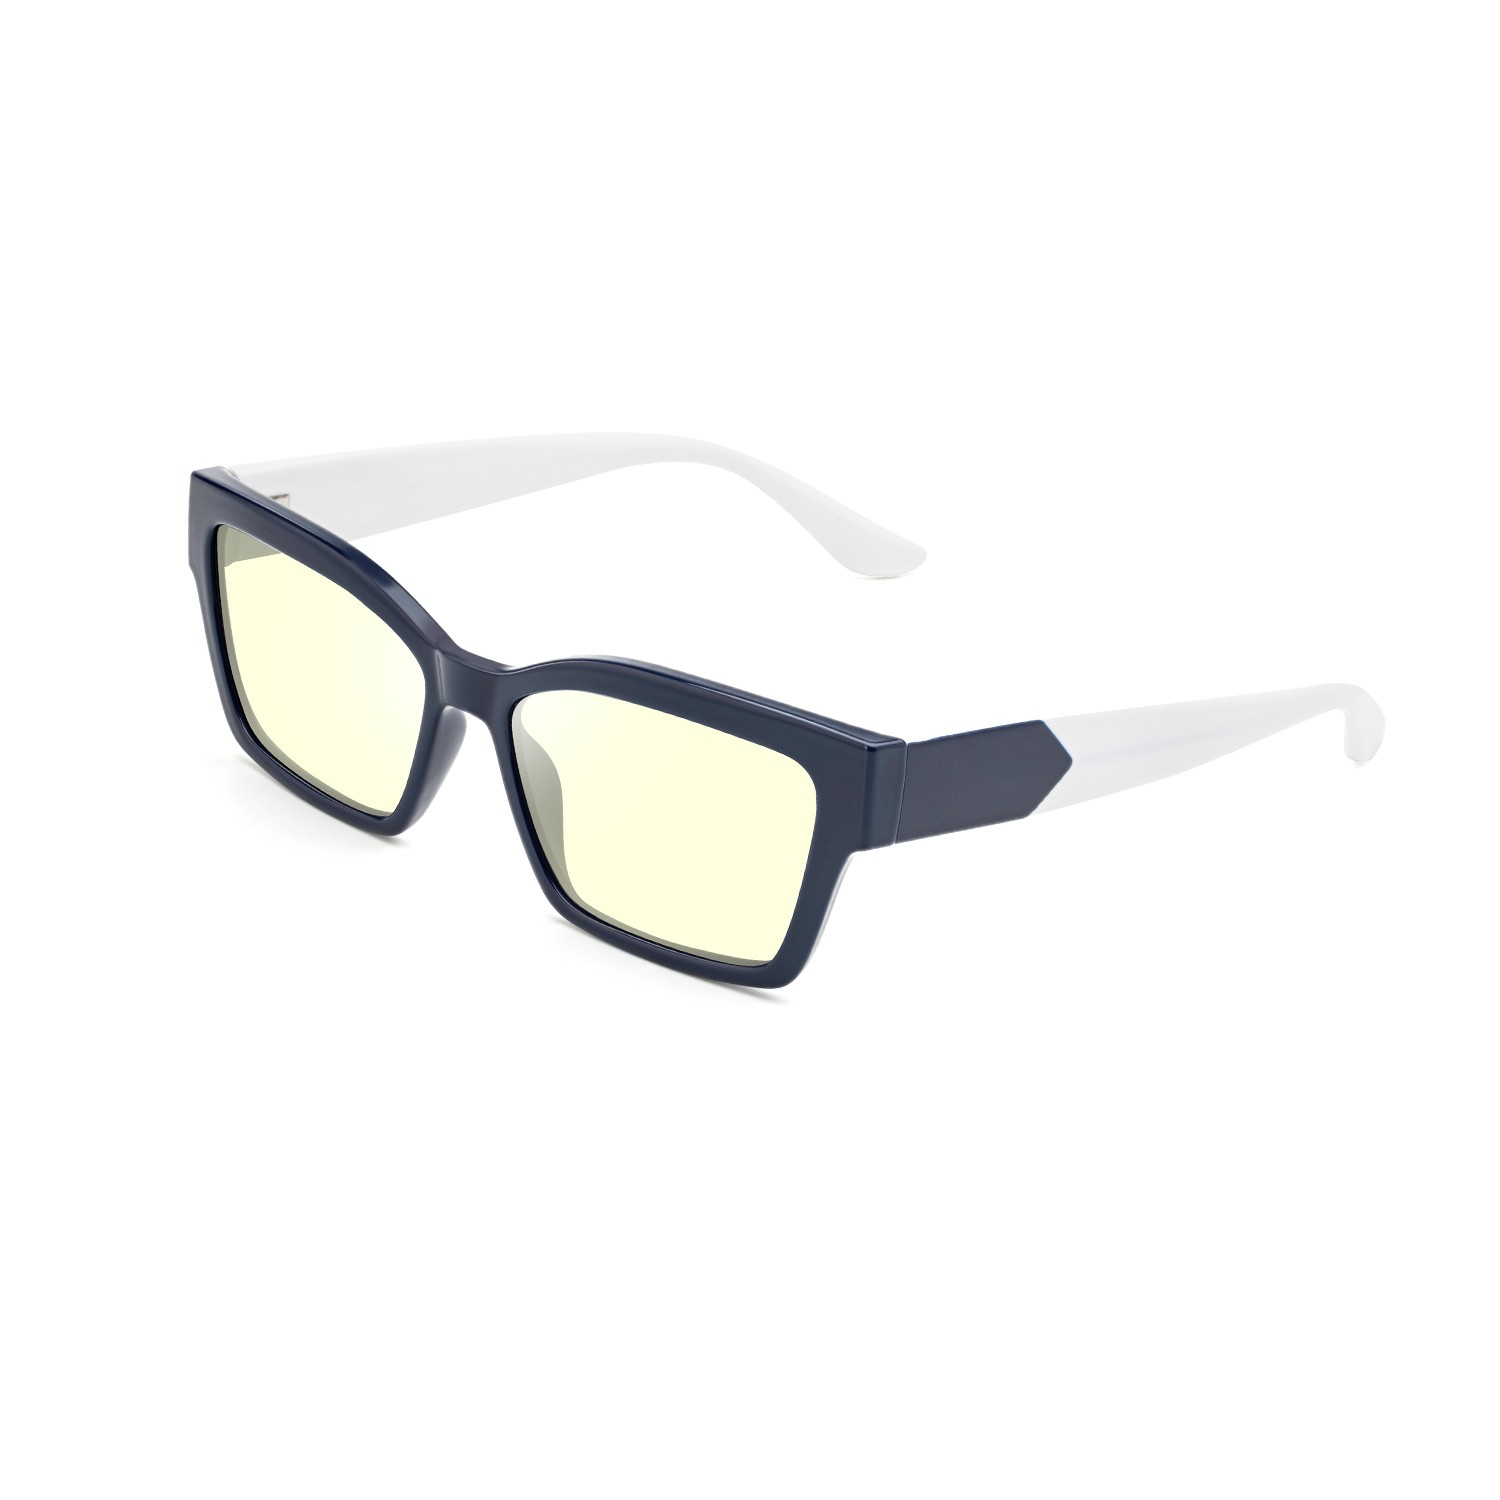 High Quality Women Square TR90 Frame and Blue Light Blocker Glasses Manufacturers, High Quality Women Square TR90 Frame and Blue Light Blocker Glasses Factory, Supply High Quality Women Square TR90 Frame and Blue Light Blocker Glasses